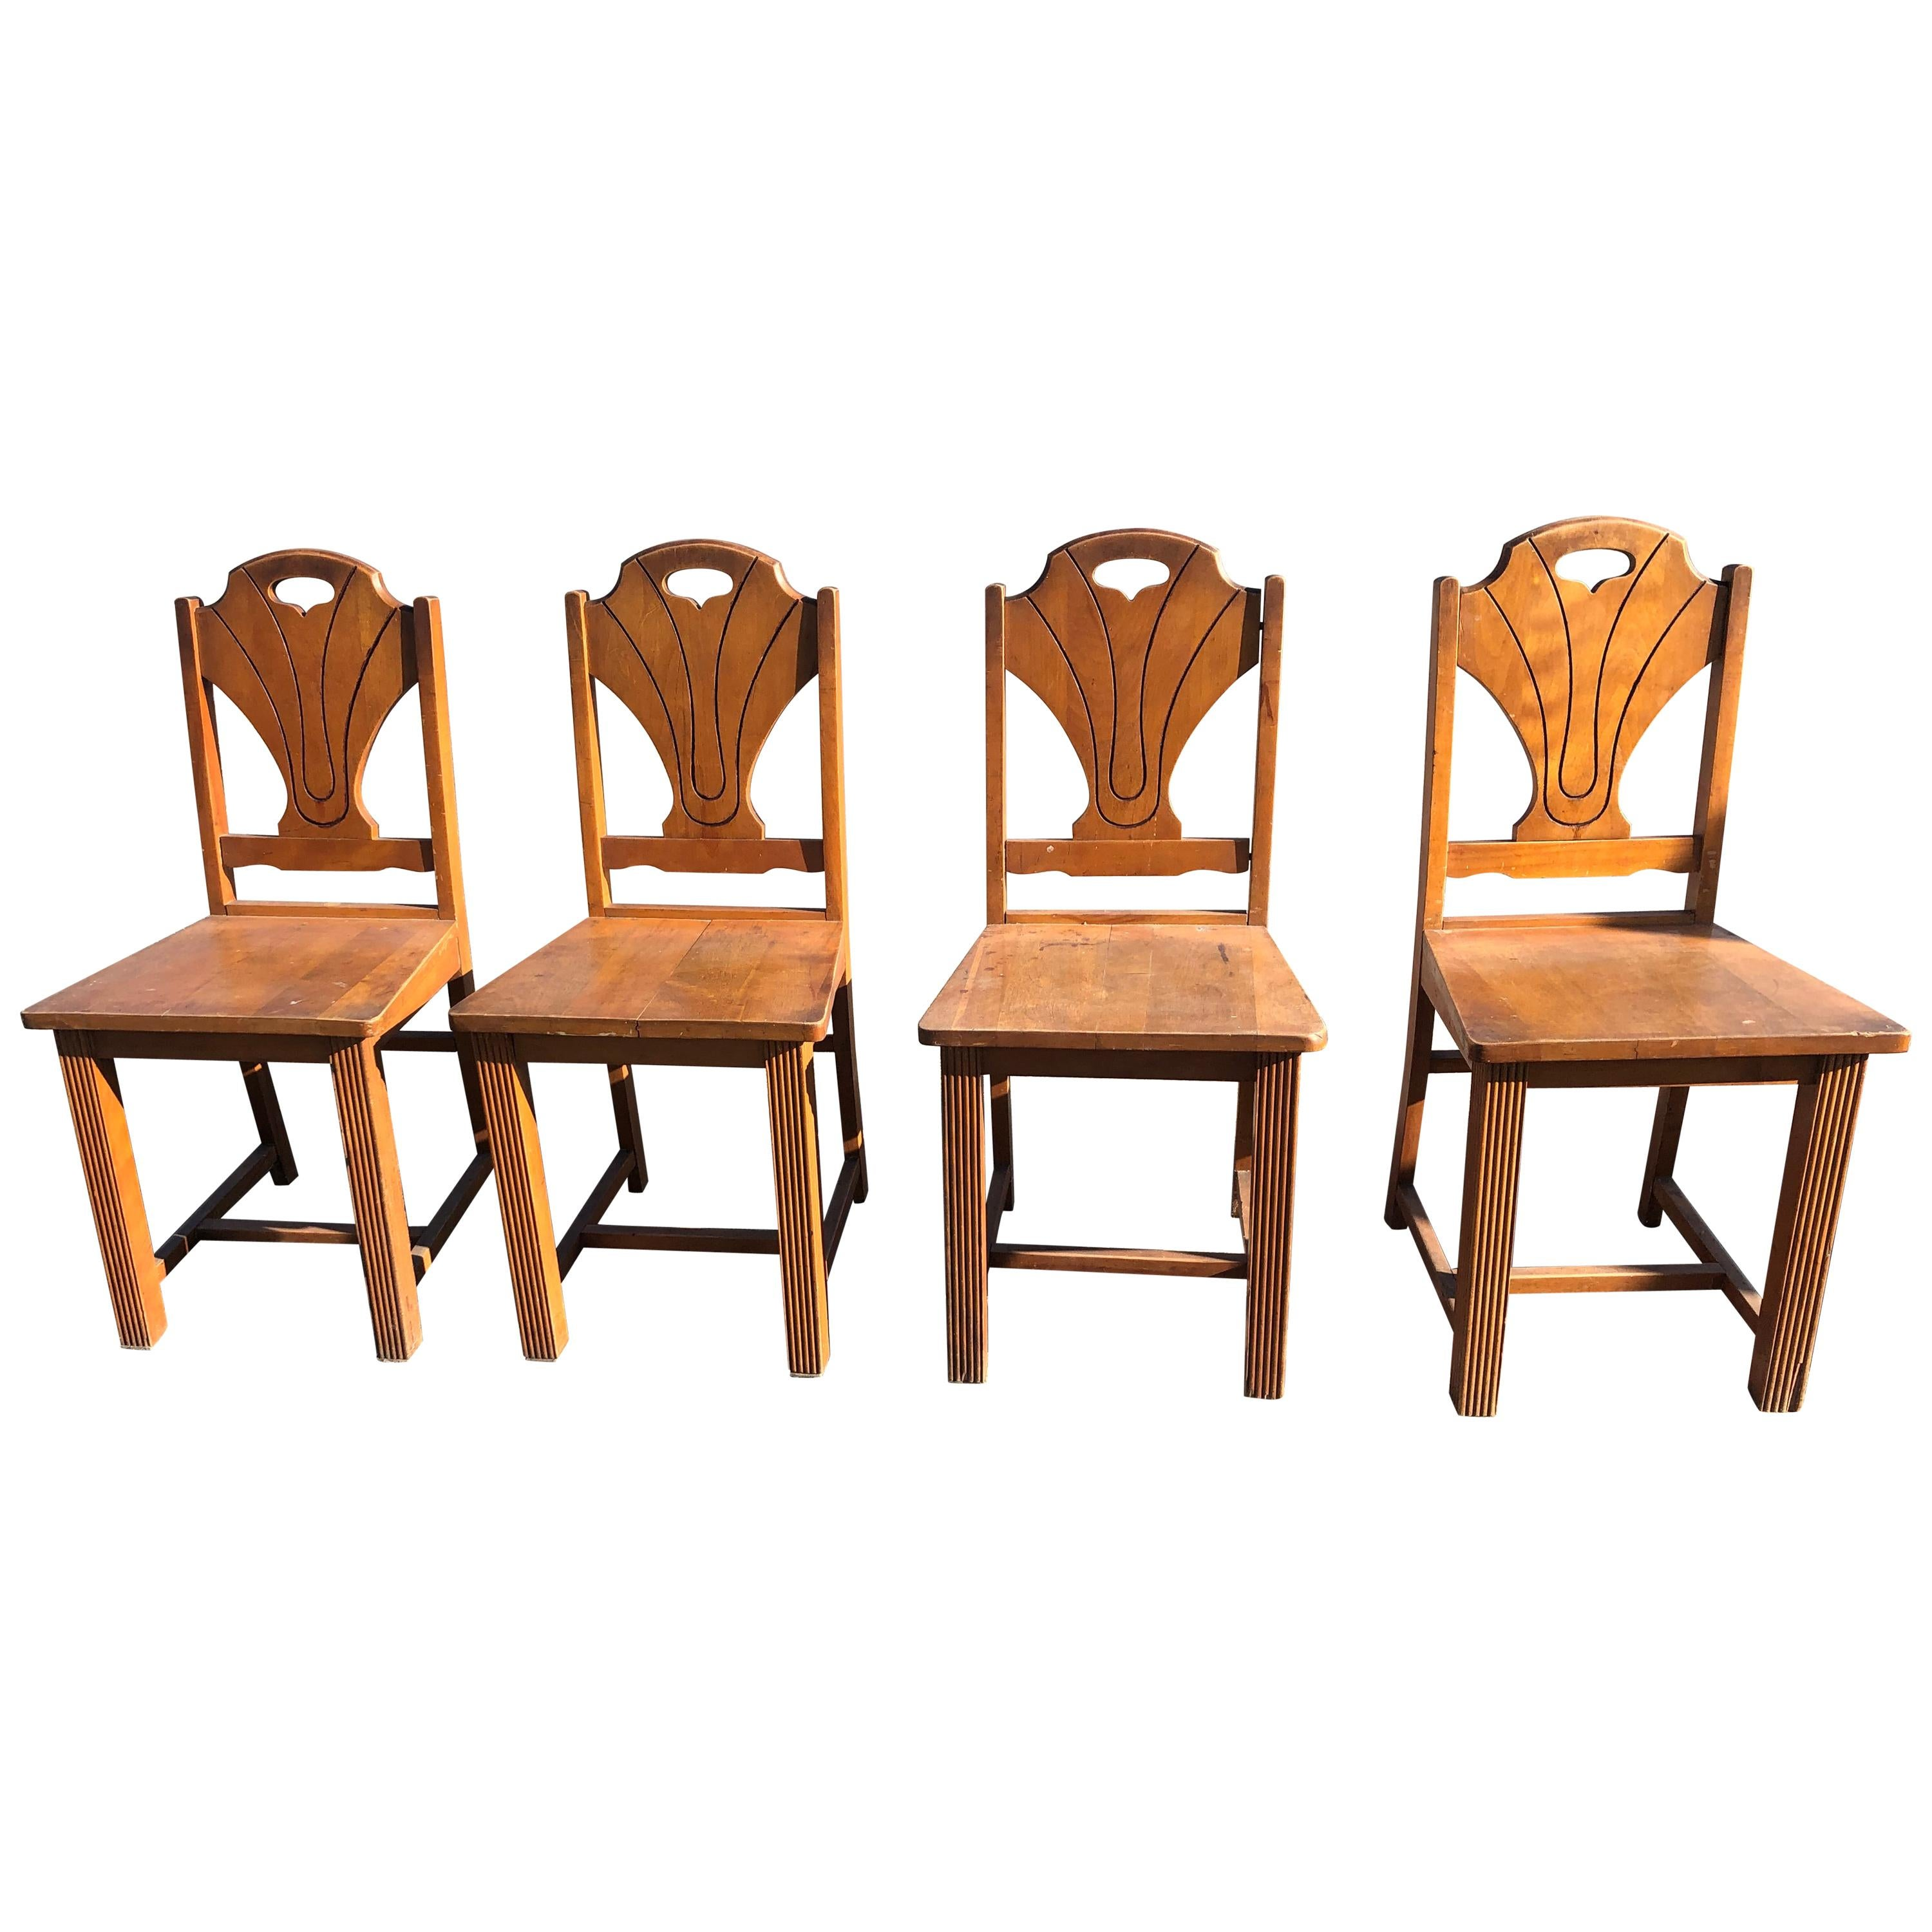 Set of 4 Art Deco Style Wooden Side Dining Chairs